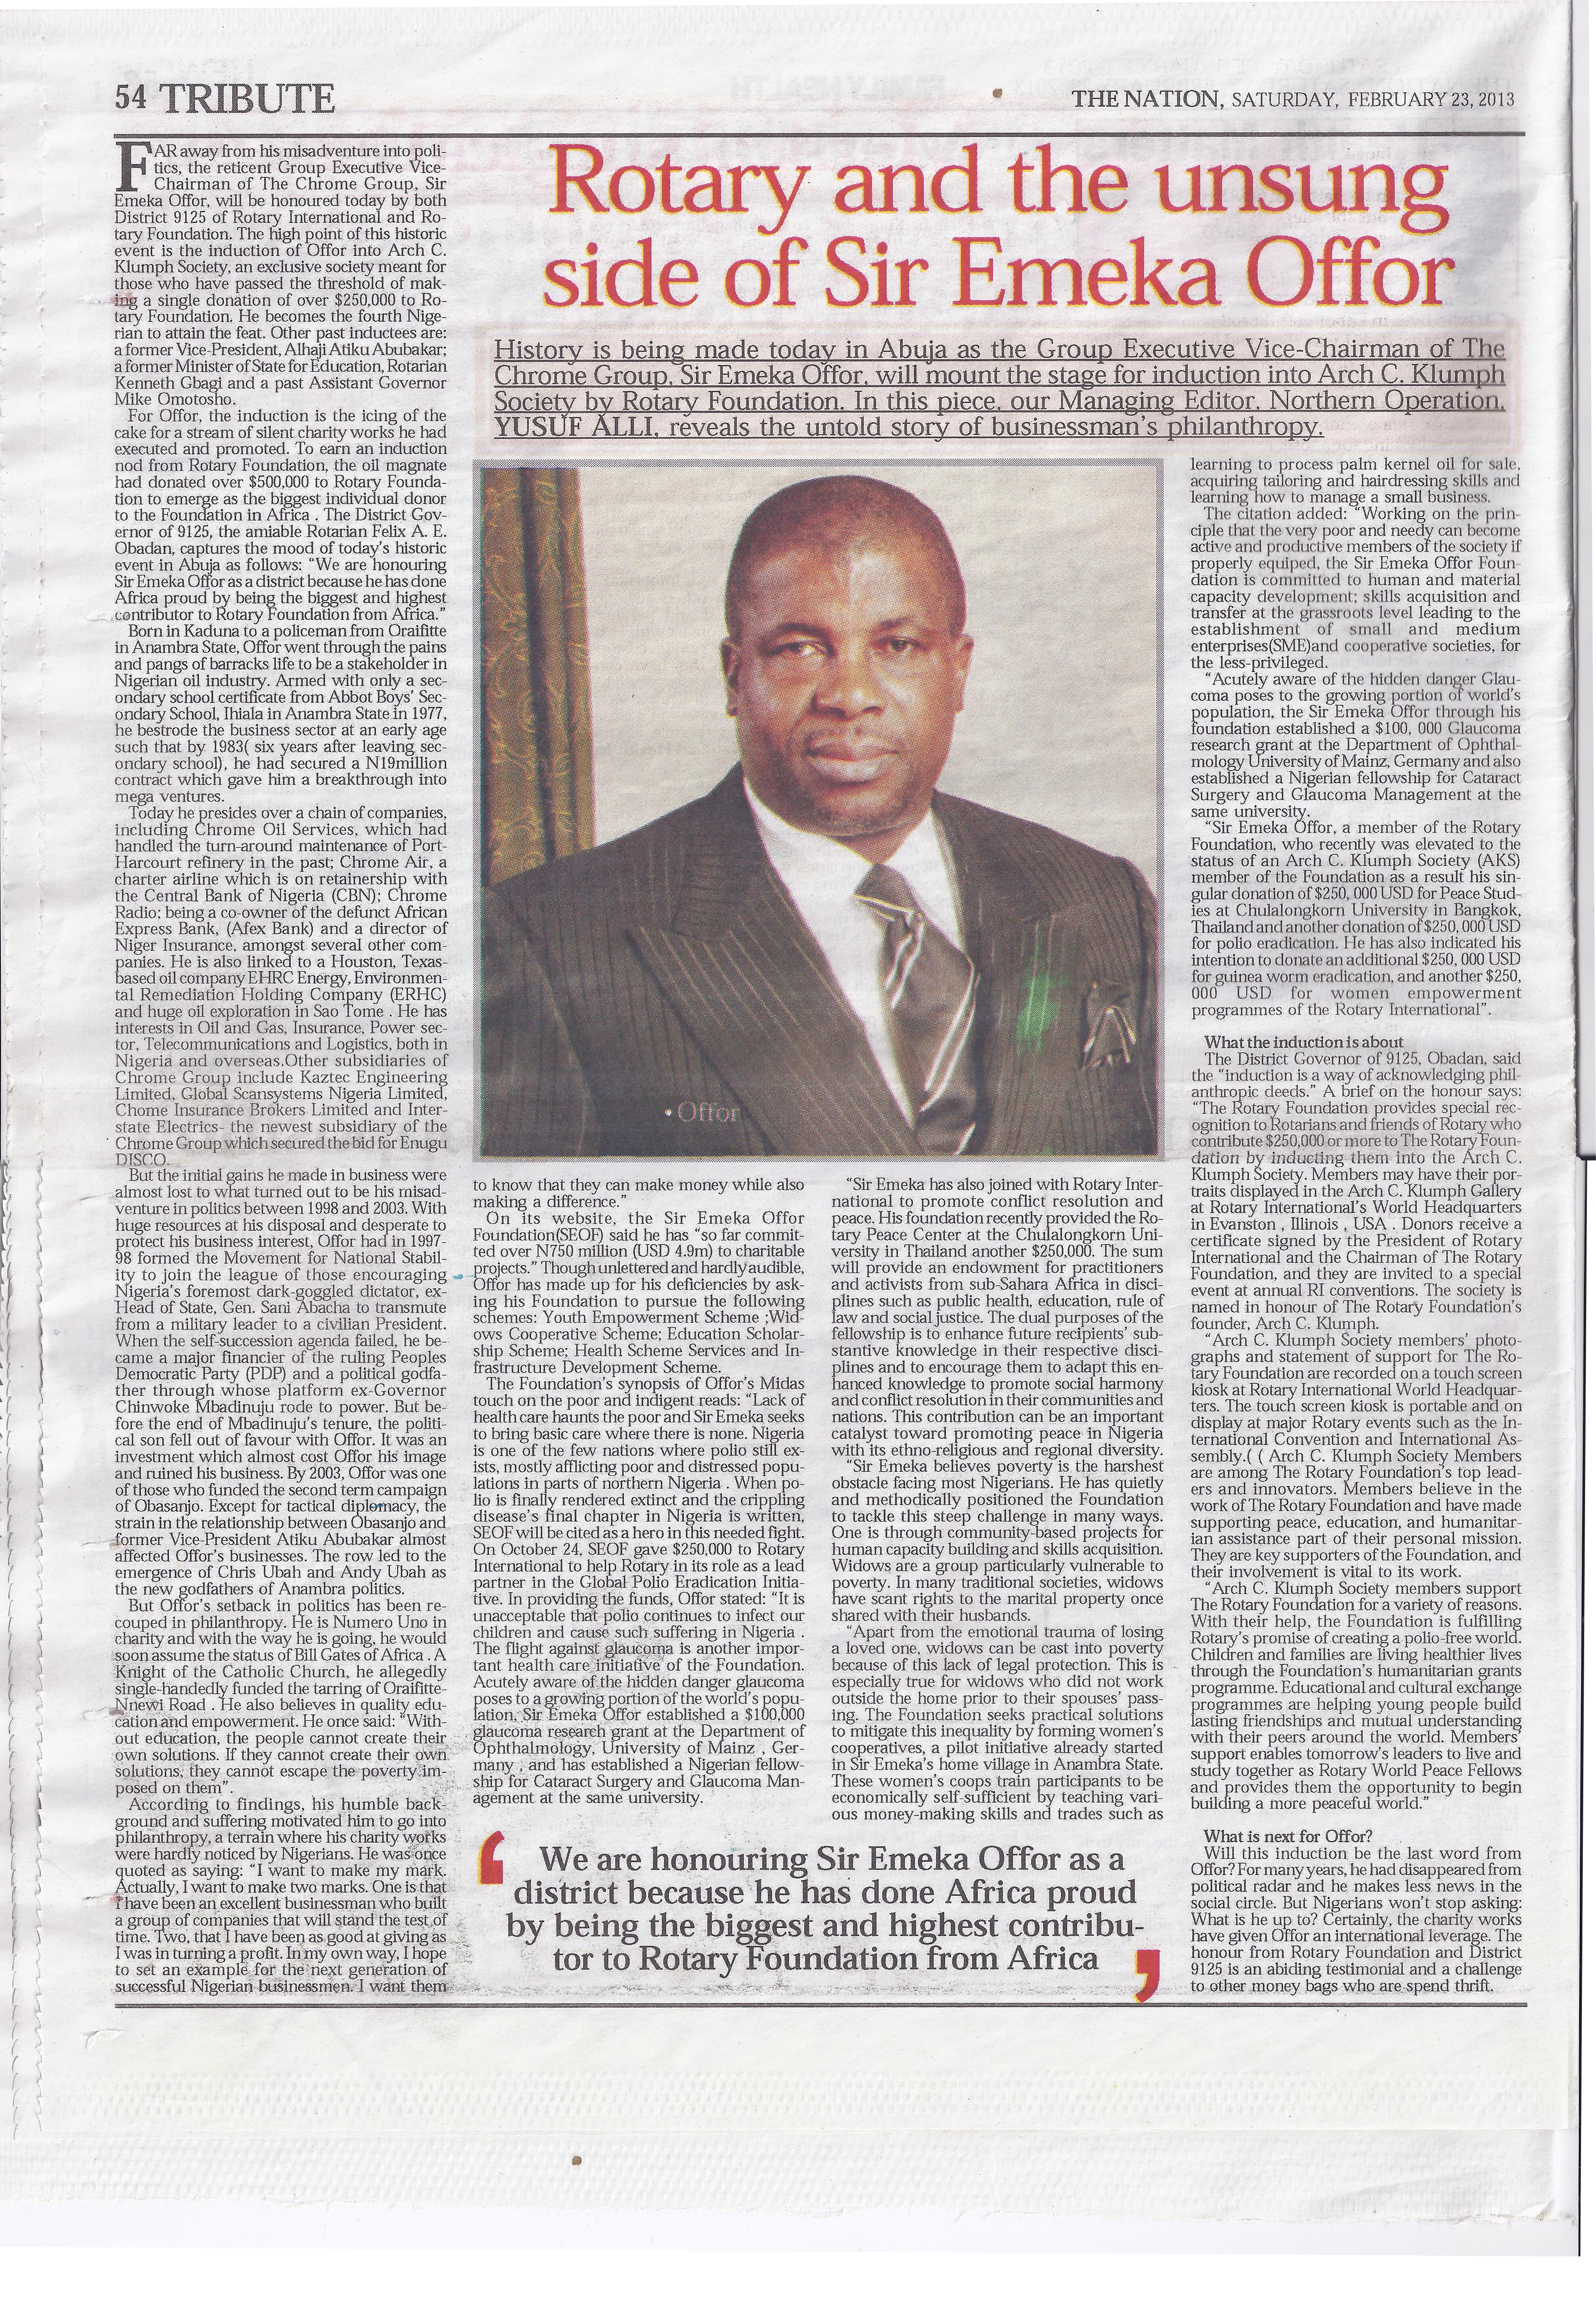 THE NATION: Rotary and the unsung side of Sir Emeka Offor